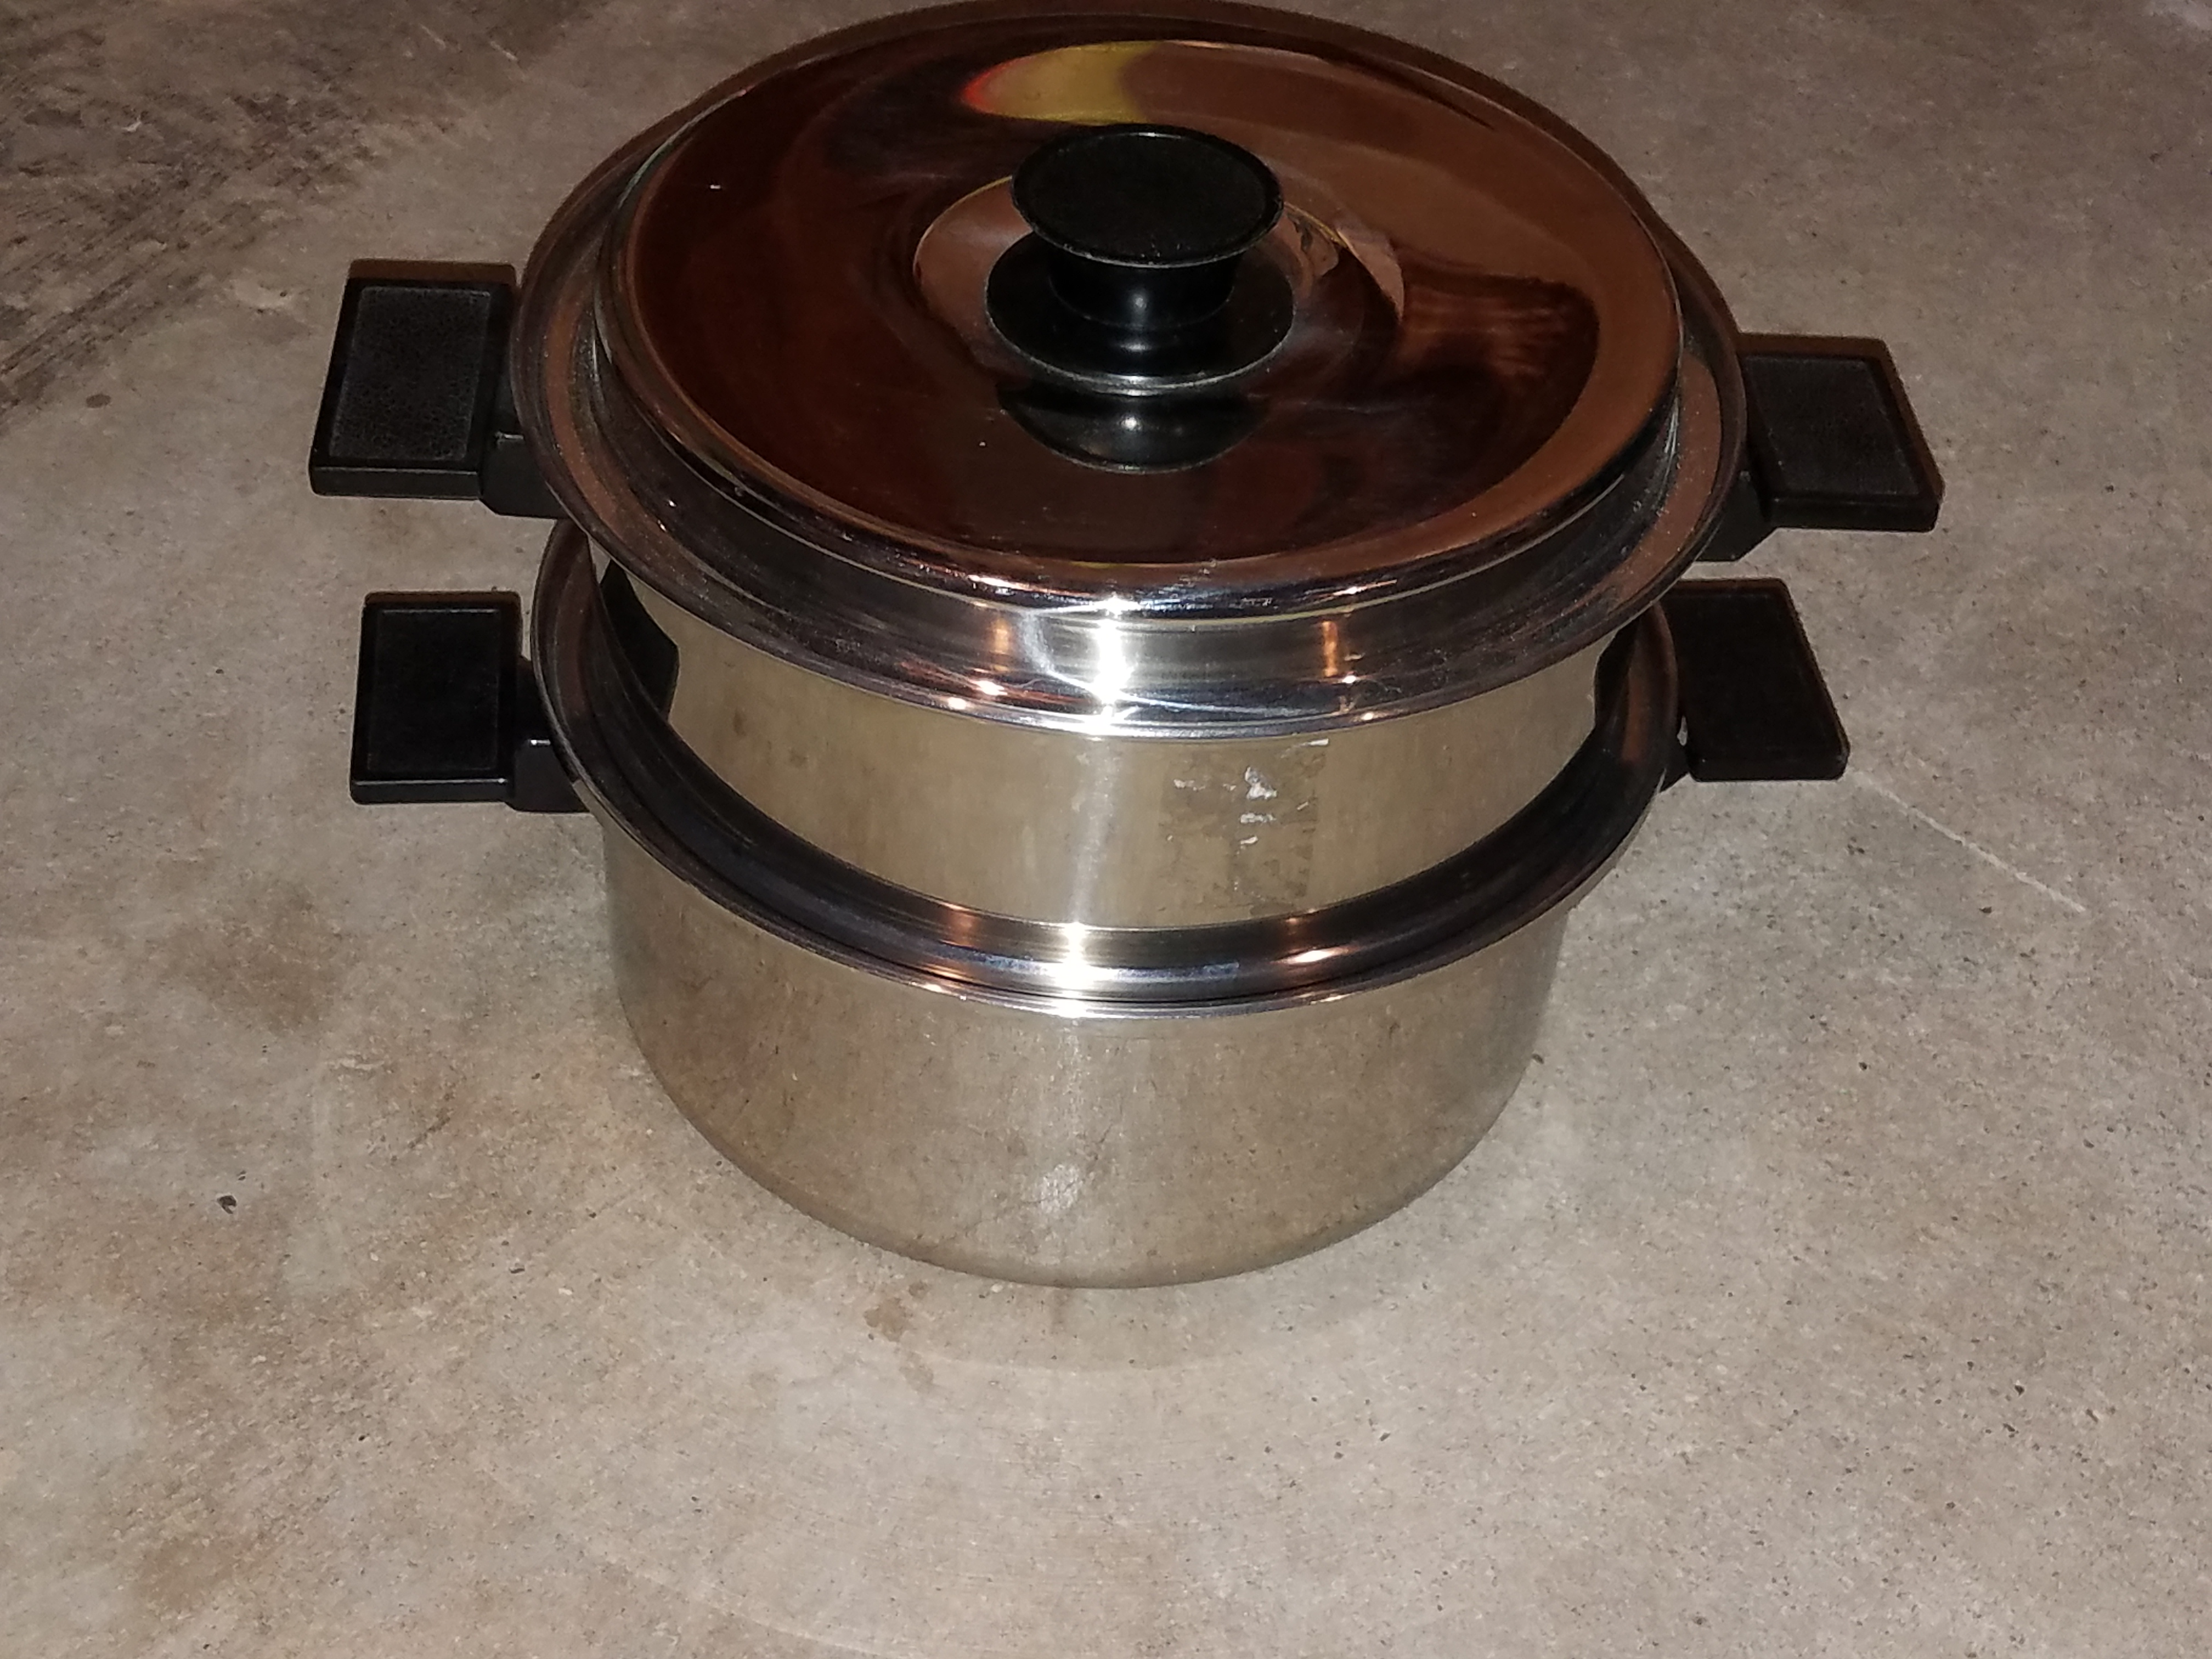 Large size double pan can be used for steaming or without the steaming pan